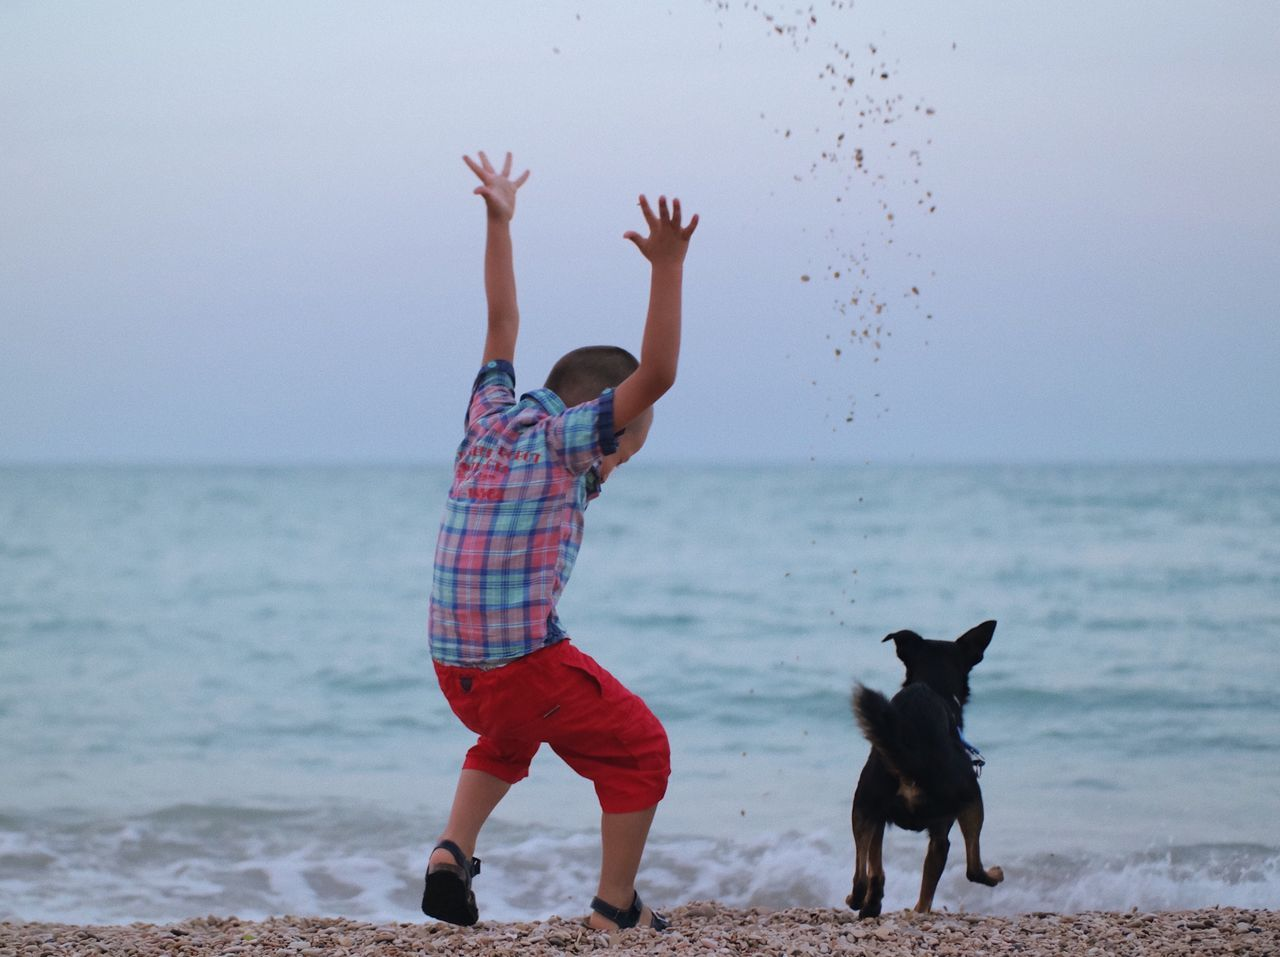 Game pals... Sea Beach Dog Pets One Animal Water Animal Themes Horizon Over Water Domestic Animals Outdoors Sand Leisure Activity Motion Nature Lifestyles Sky One Person Day Throwing  Summer Fun Playing Playtime Childhood Enjoying Life